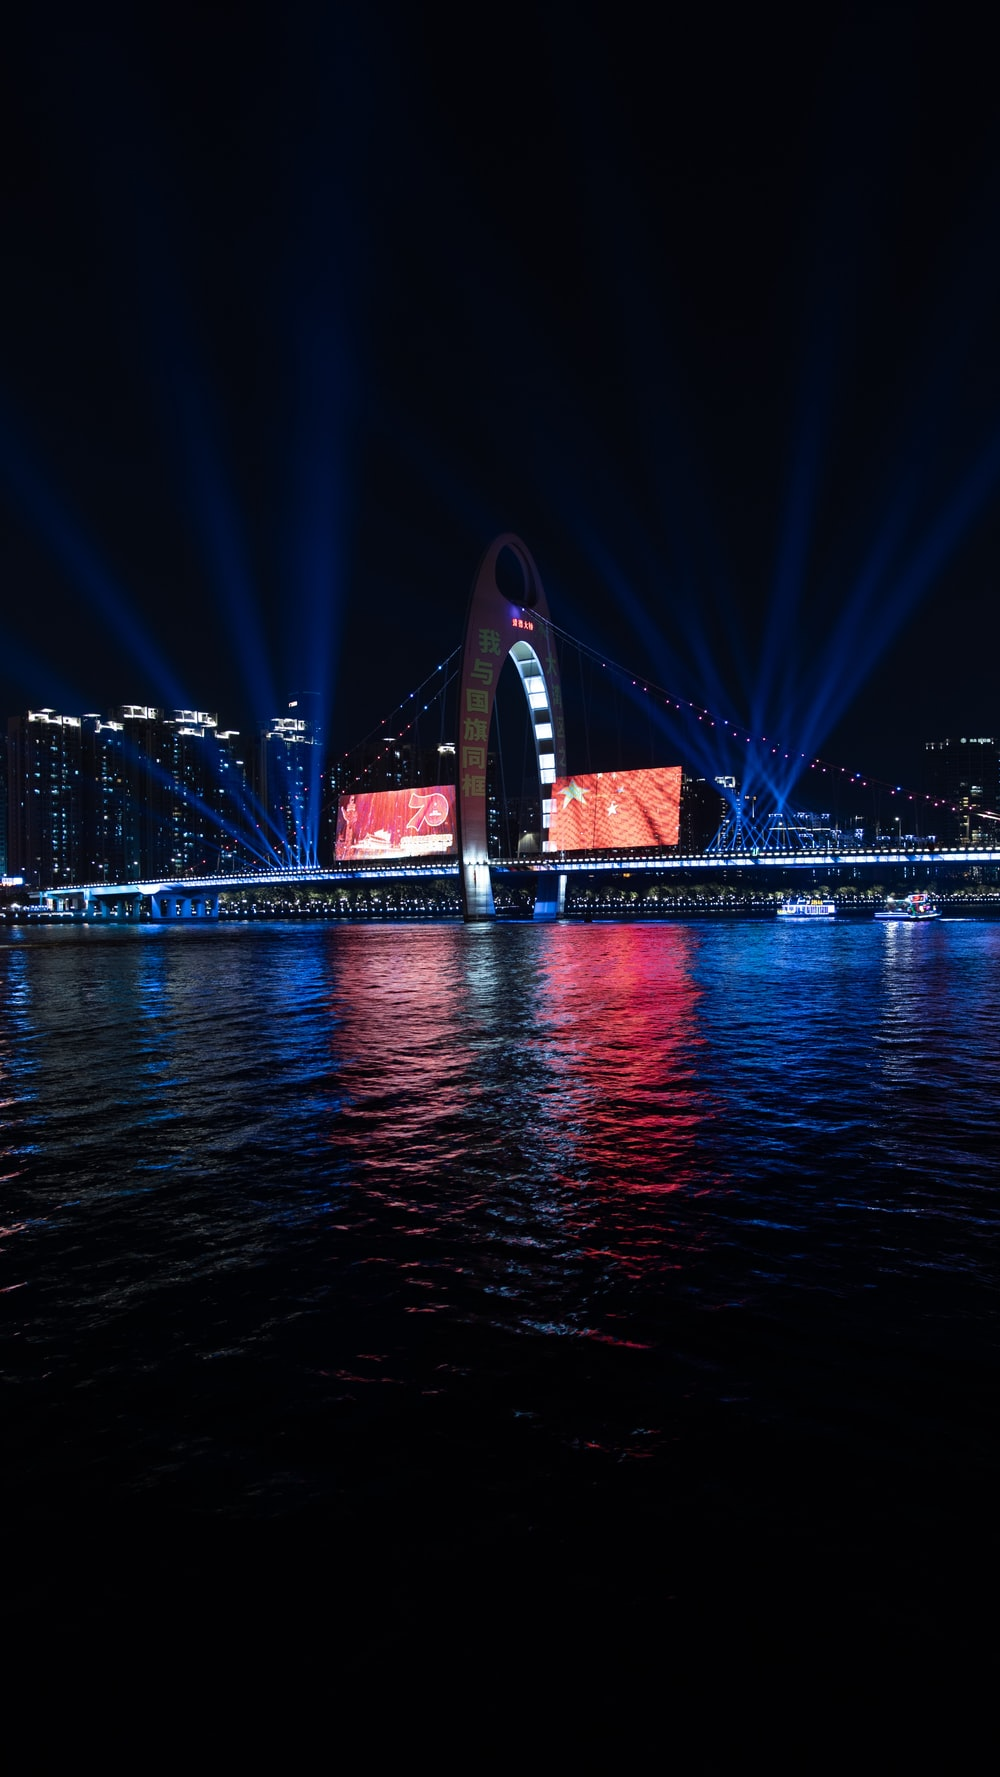 stage lights reflection on body of water at night